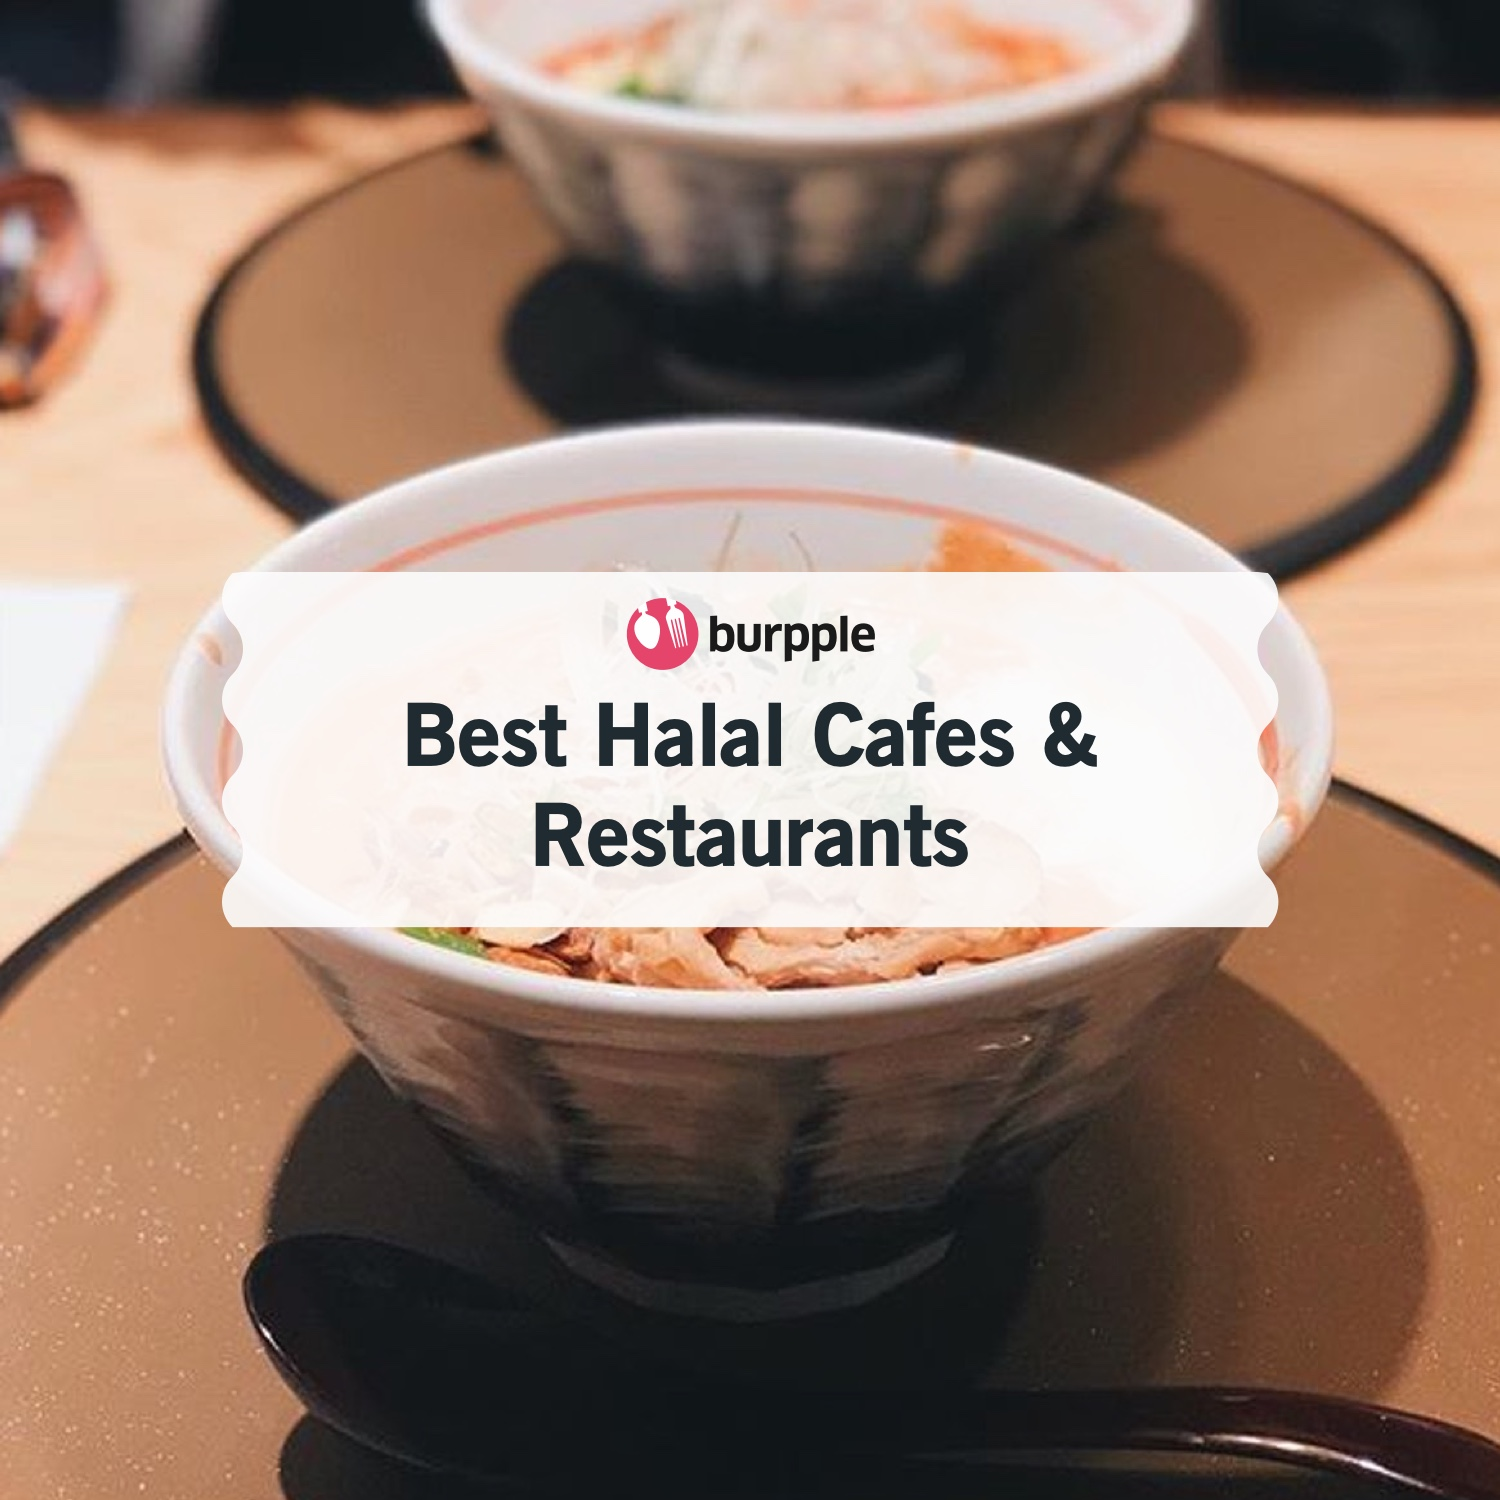 Best Halal Cafes & Restaurants in Singapore